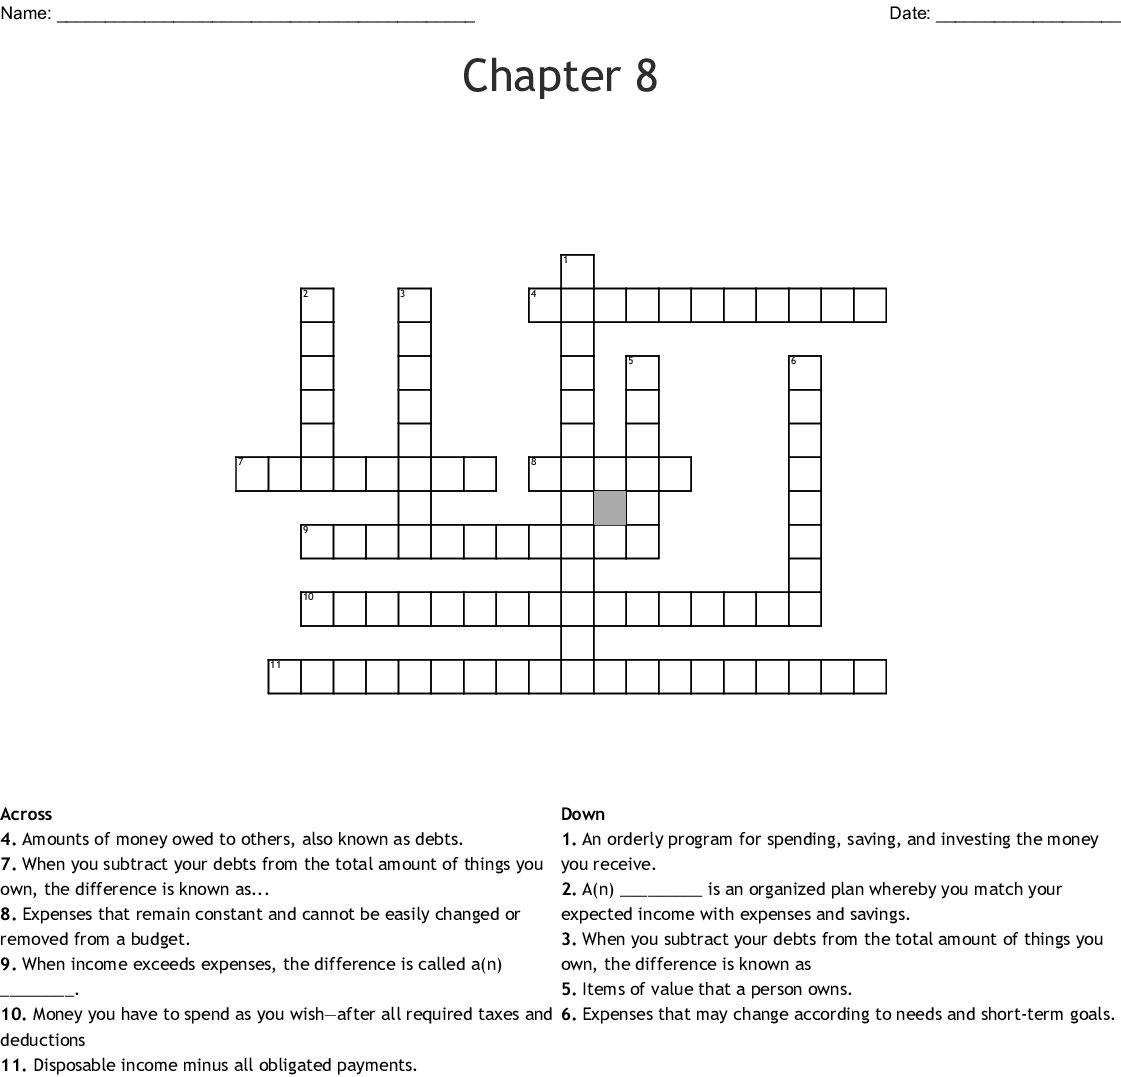 Chapter 8 Budgets And Financial Records Worksheet Answers